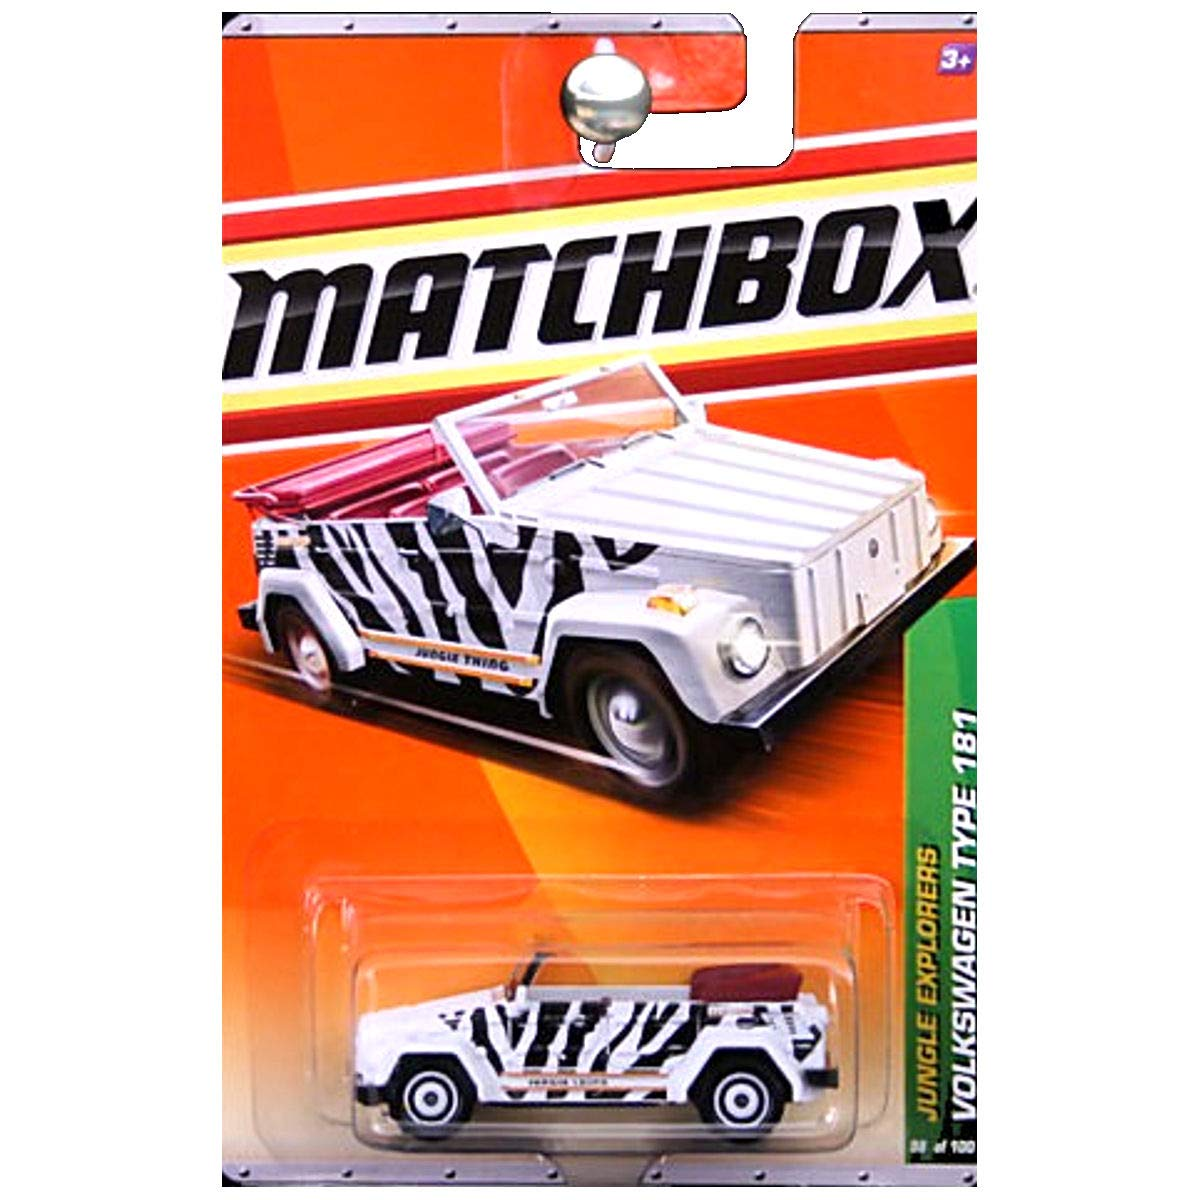 VOLKSWAGEN TYPE 181  WHITE  Jungle Explorers Series (4 of 6) MATCHBOX 2011 Basic Die-Cast Vehicle (98 of 100) by Matchbox